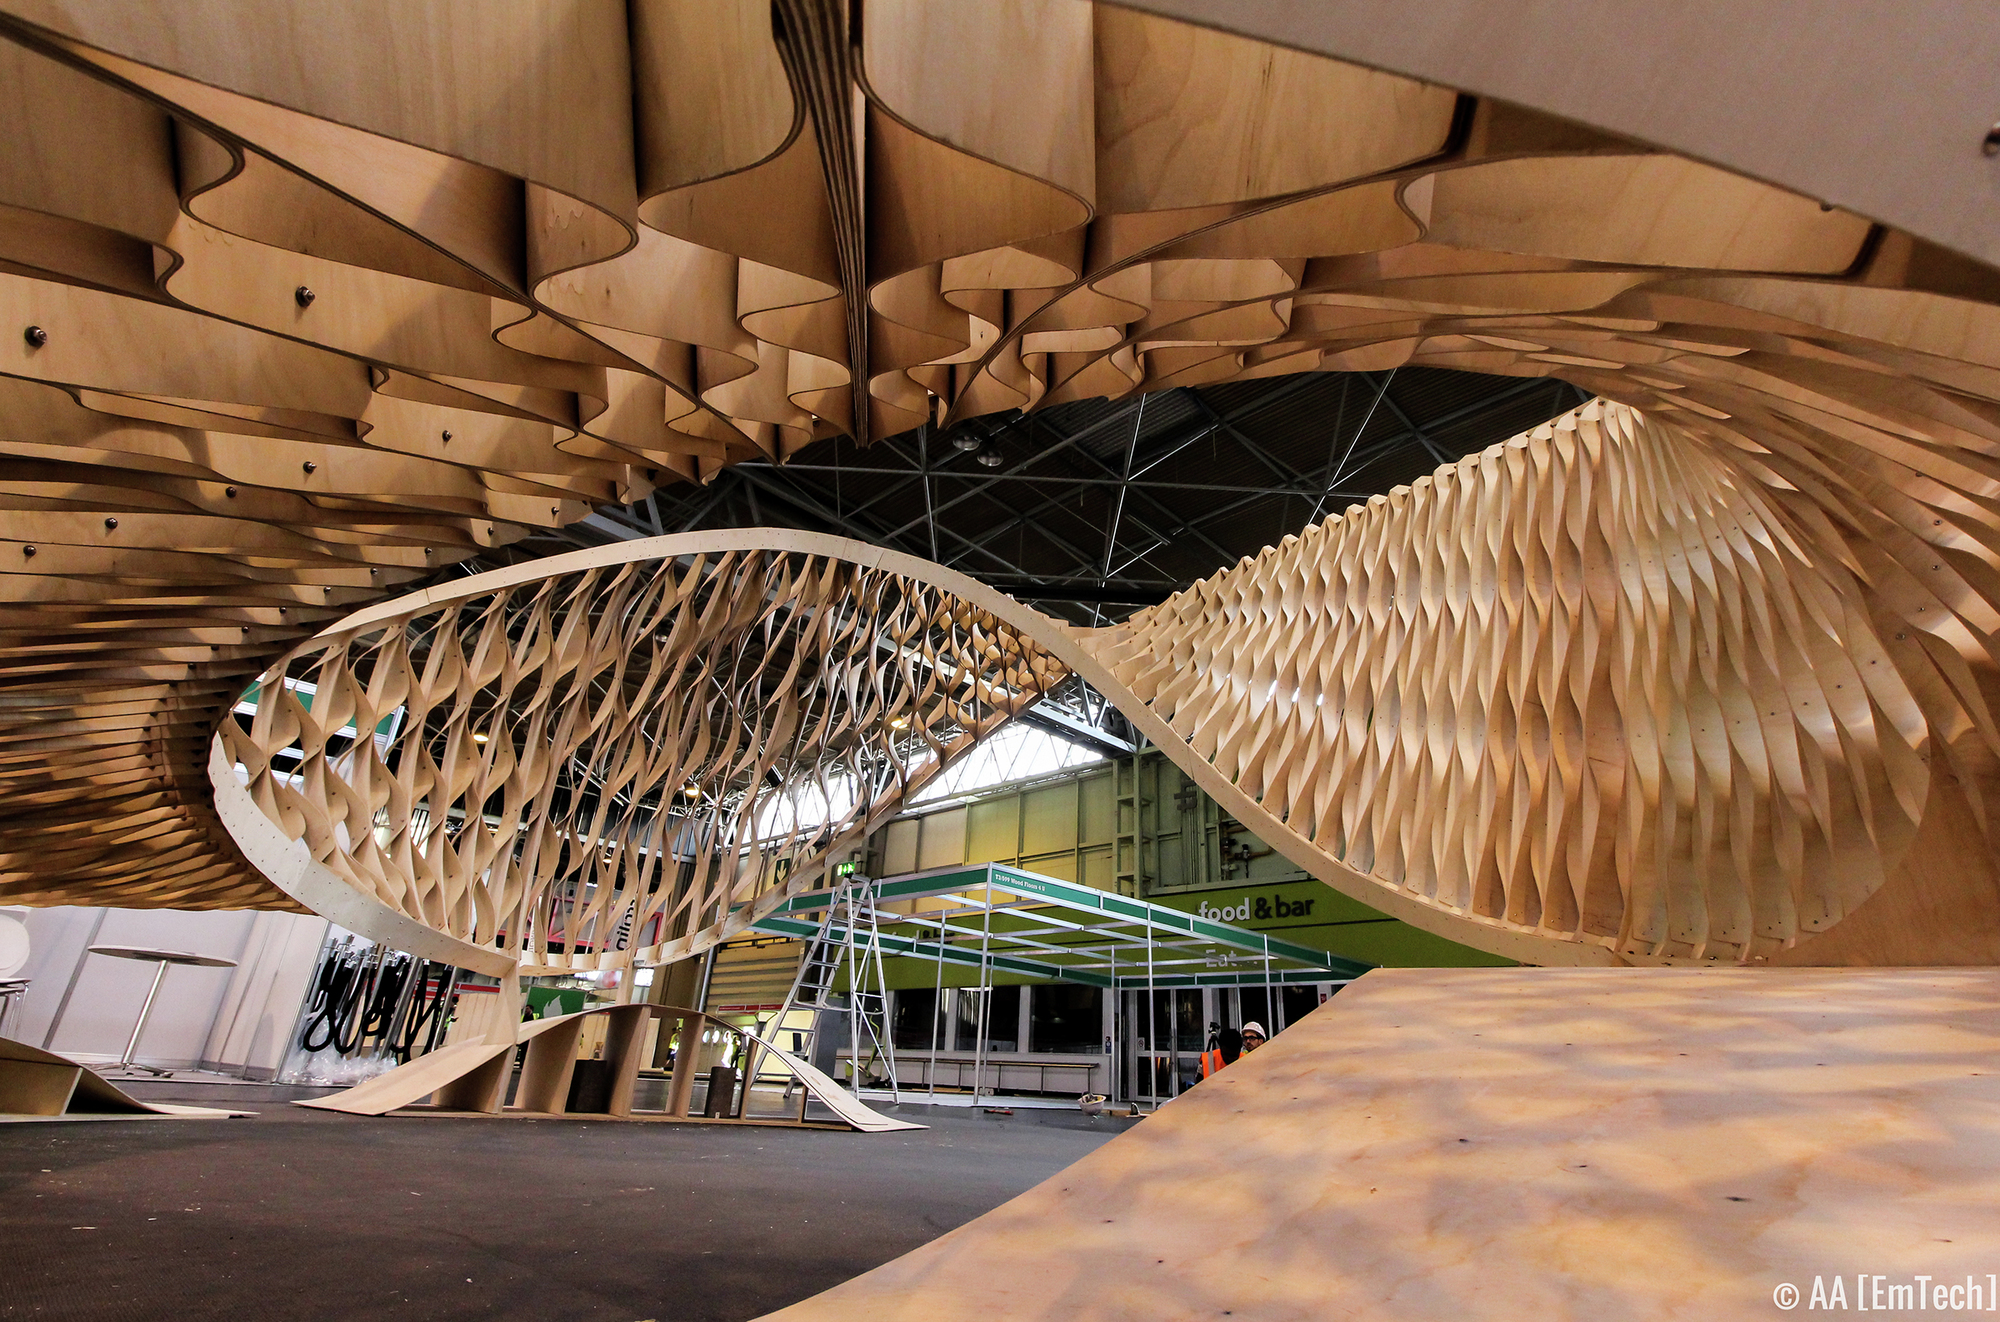 EmTech TWISTs Plywood at the Timber Expo in Birmingham, The TWIST  installation at Timber Expo